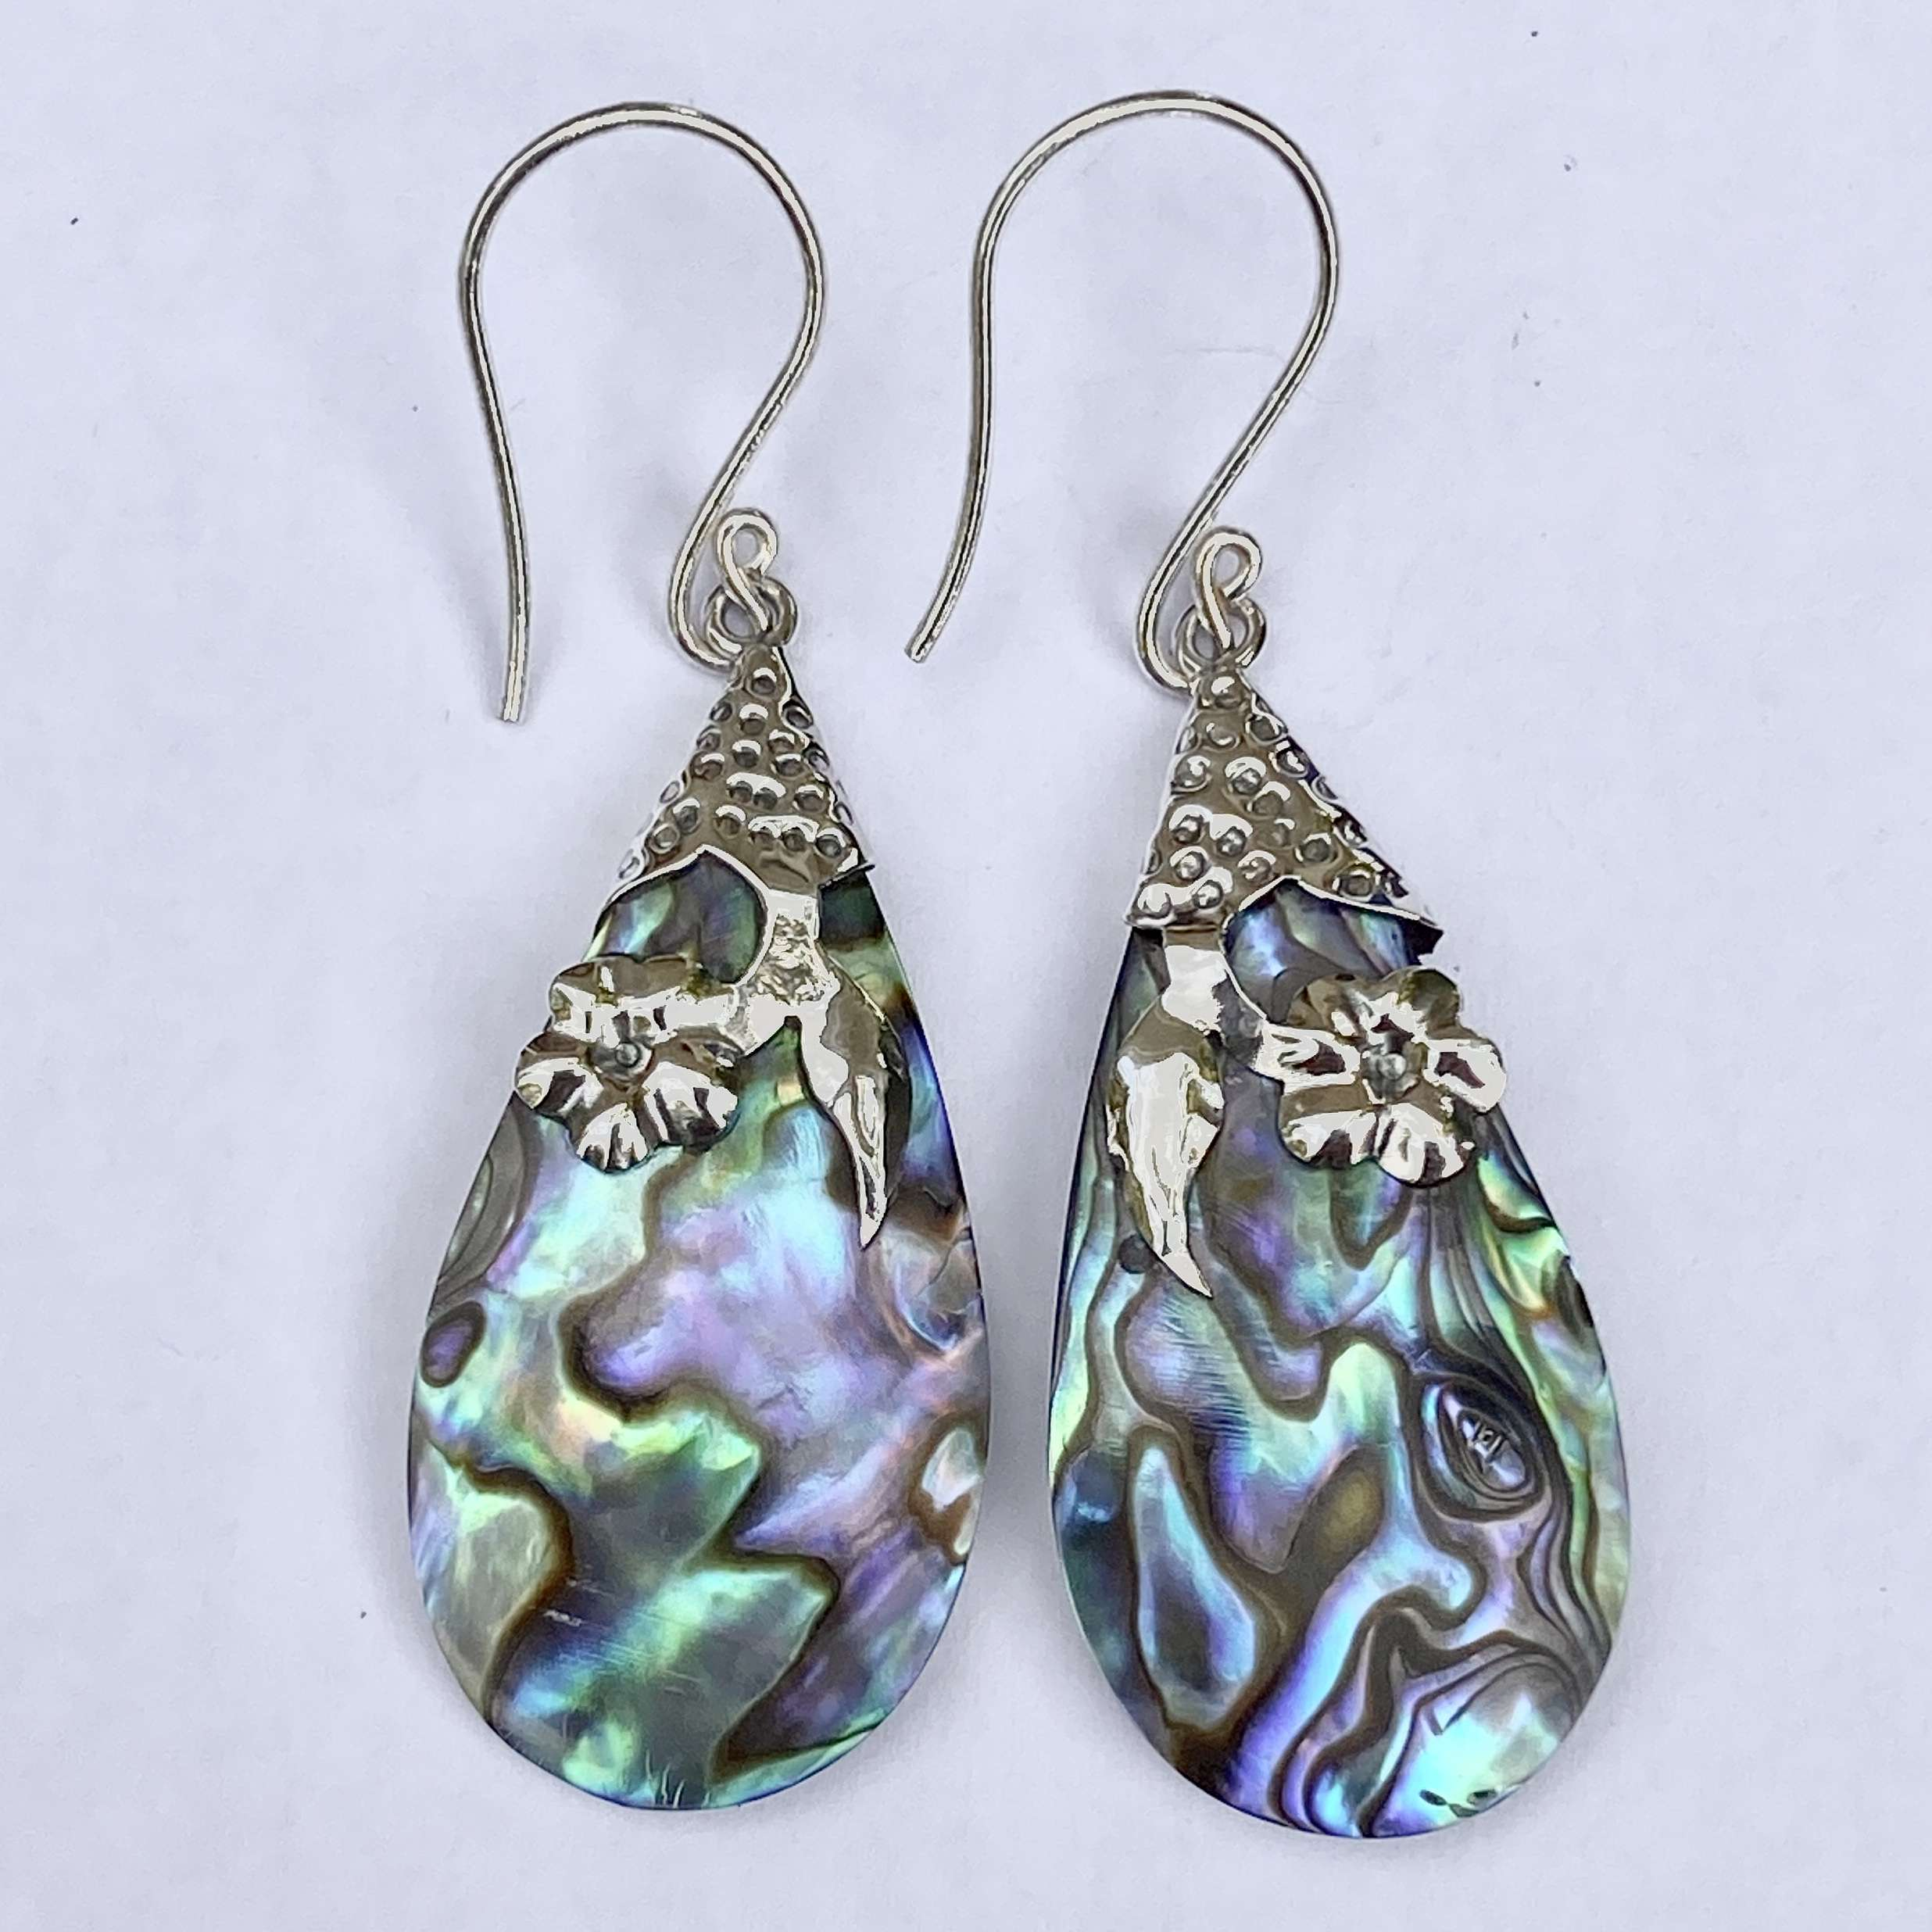 (HANDMADE UNIQUE 925 BALI SILVER FILIGREE EARRINGS WITH ABALONE)